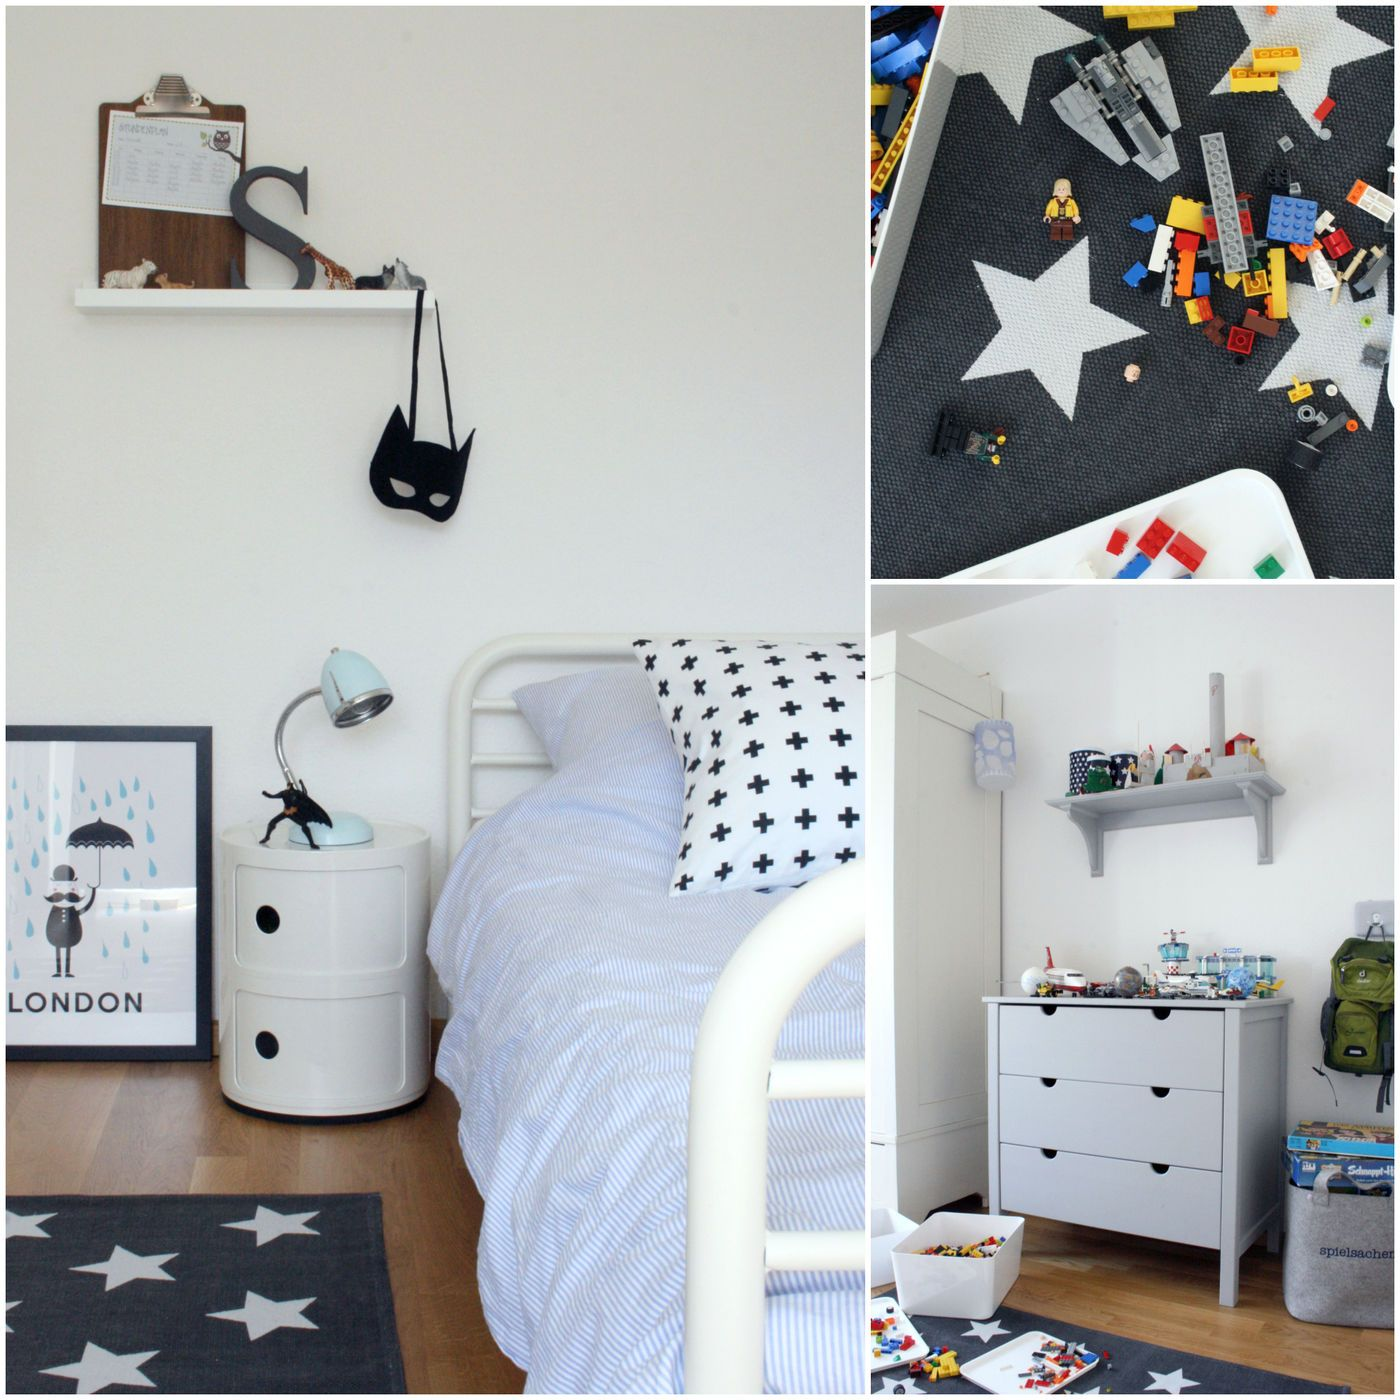 die sch nsten ideen f r das jungenzimmer seite 2. Black Bedroom Furniture Sets. Home Design Ideas